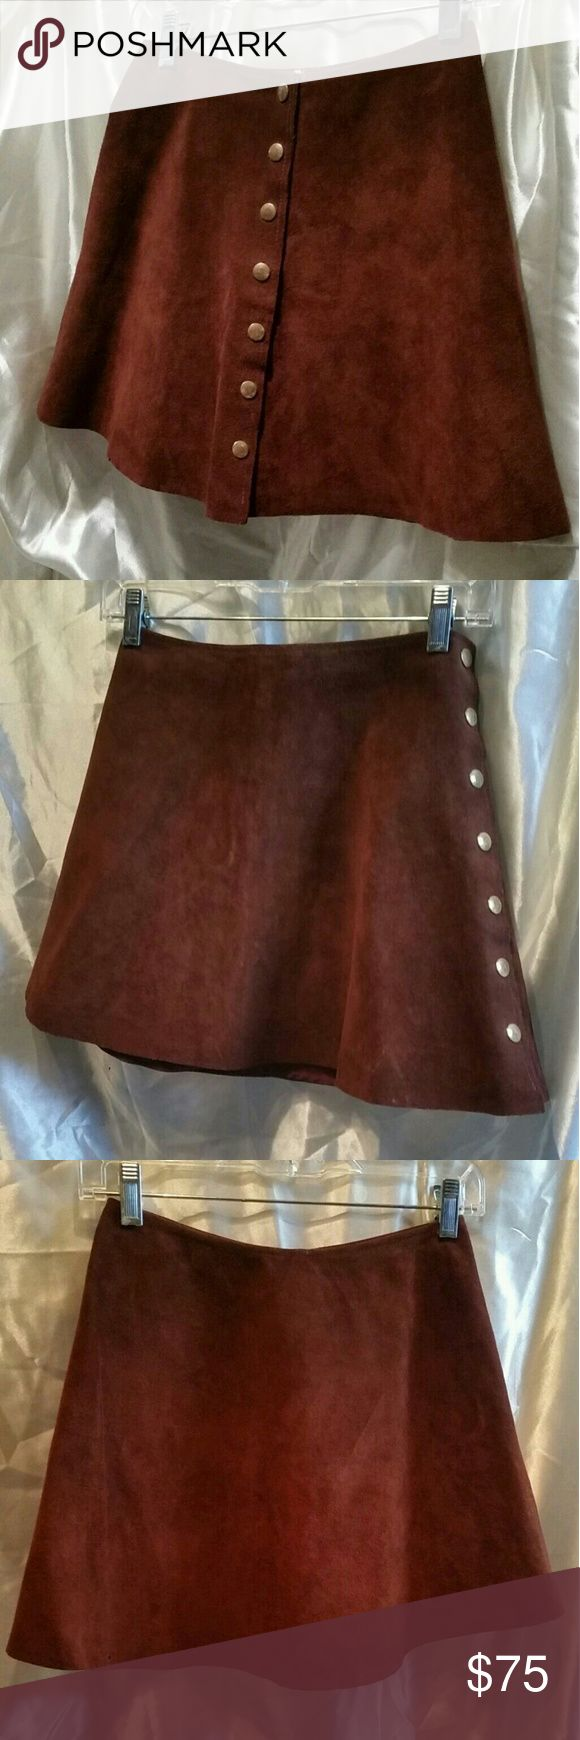 """Vintage Suede Snap Up Fit & Flare Mini Skirt VINTAGE CHOCOLATE BROWN SUEDE SNAP UP FLARE MINI SKIRT. CAN ALSO BE WORN SNAPPED AT SIDE.  SIZE XS TO SMALL, MEASURES:  12.5"""" ACROSS WAIST AND 14.75"""" LONG.  UNLINED, NO LABELS PRESE T.  IN VERY STRONG VINTAGE CONDITION, SOME LIGHT SURFACE SMUDGES AS PICTURED, MAY BRUSH OUT NICELY, I HAVE NOT TRIED.  ANY QUESTIONS OR CONCERNS, PLEASE ASK AS ALL SALES ARE FINAL.  THANKS FOR LOOKING. Unbranded Skirts Mini"""